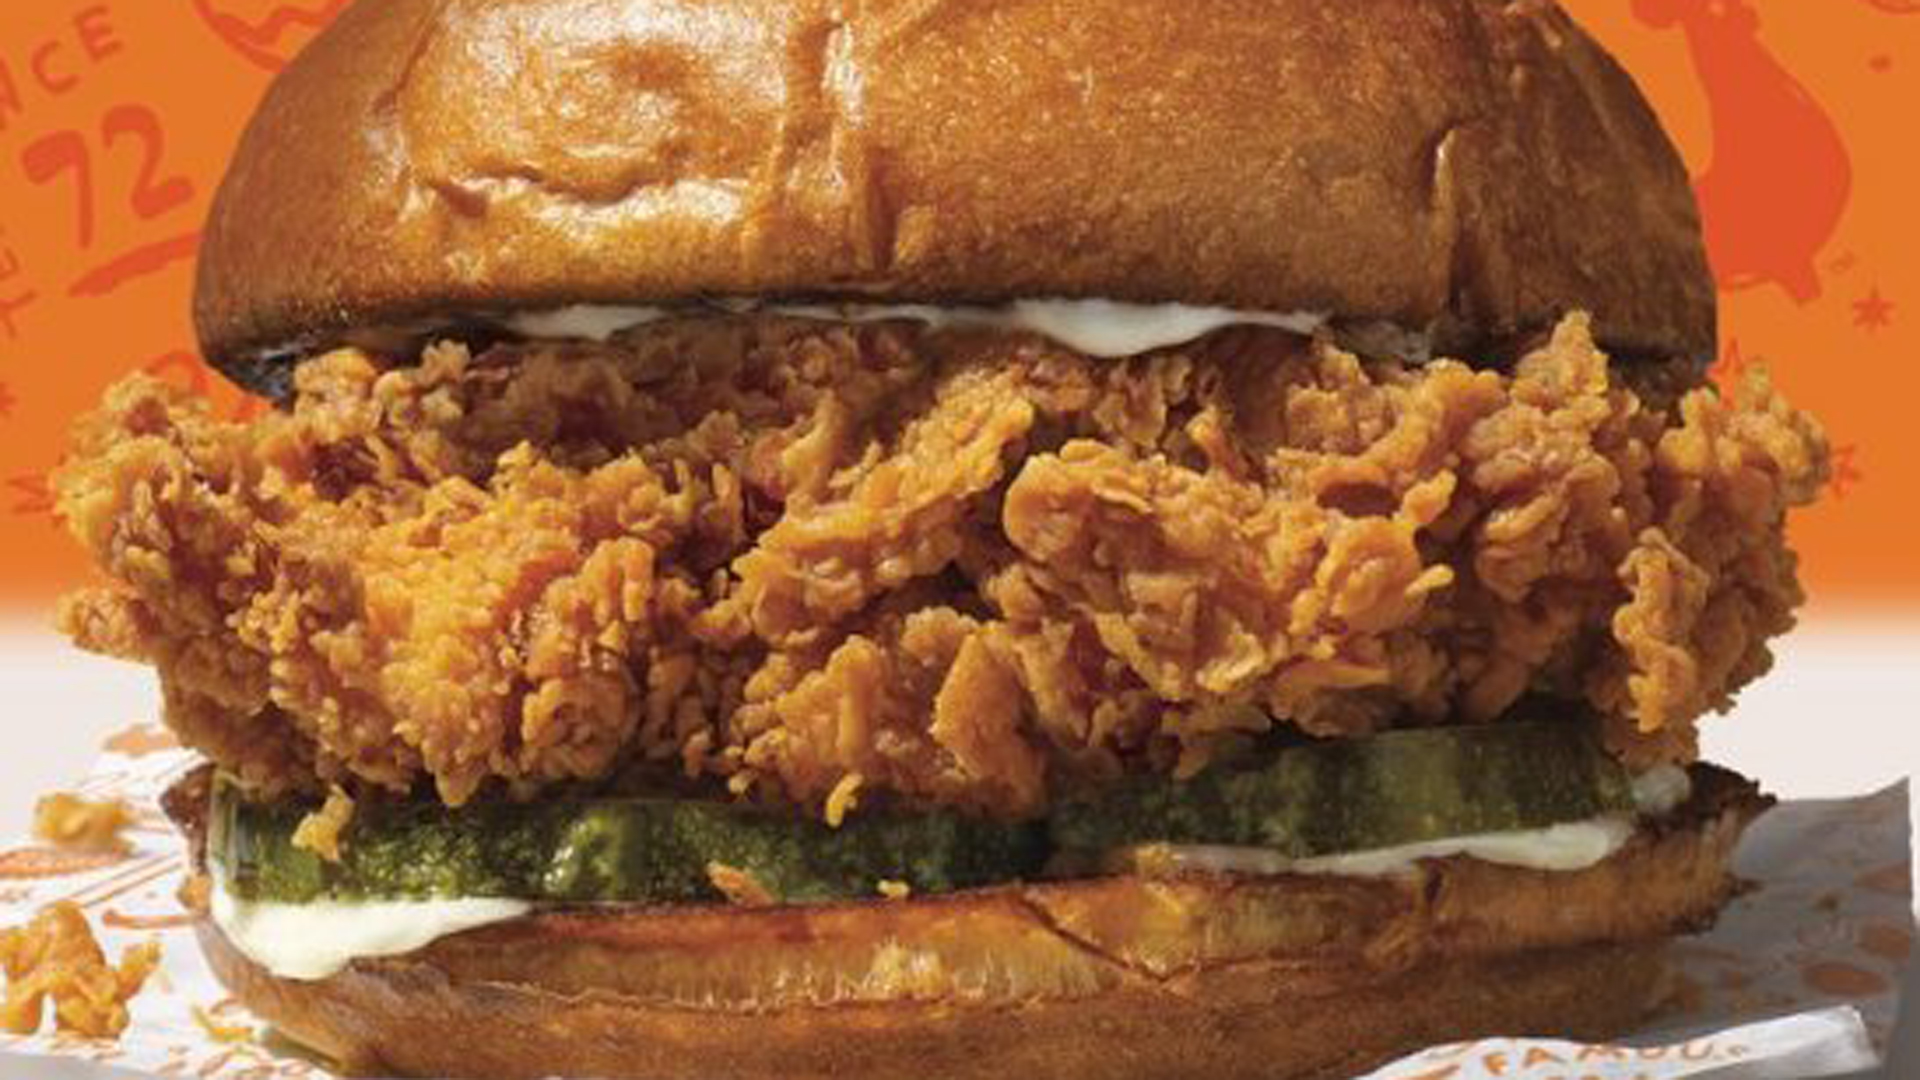 The new Popeyes chicken sandwich is seen in a photo distributed by the restaurant chain.